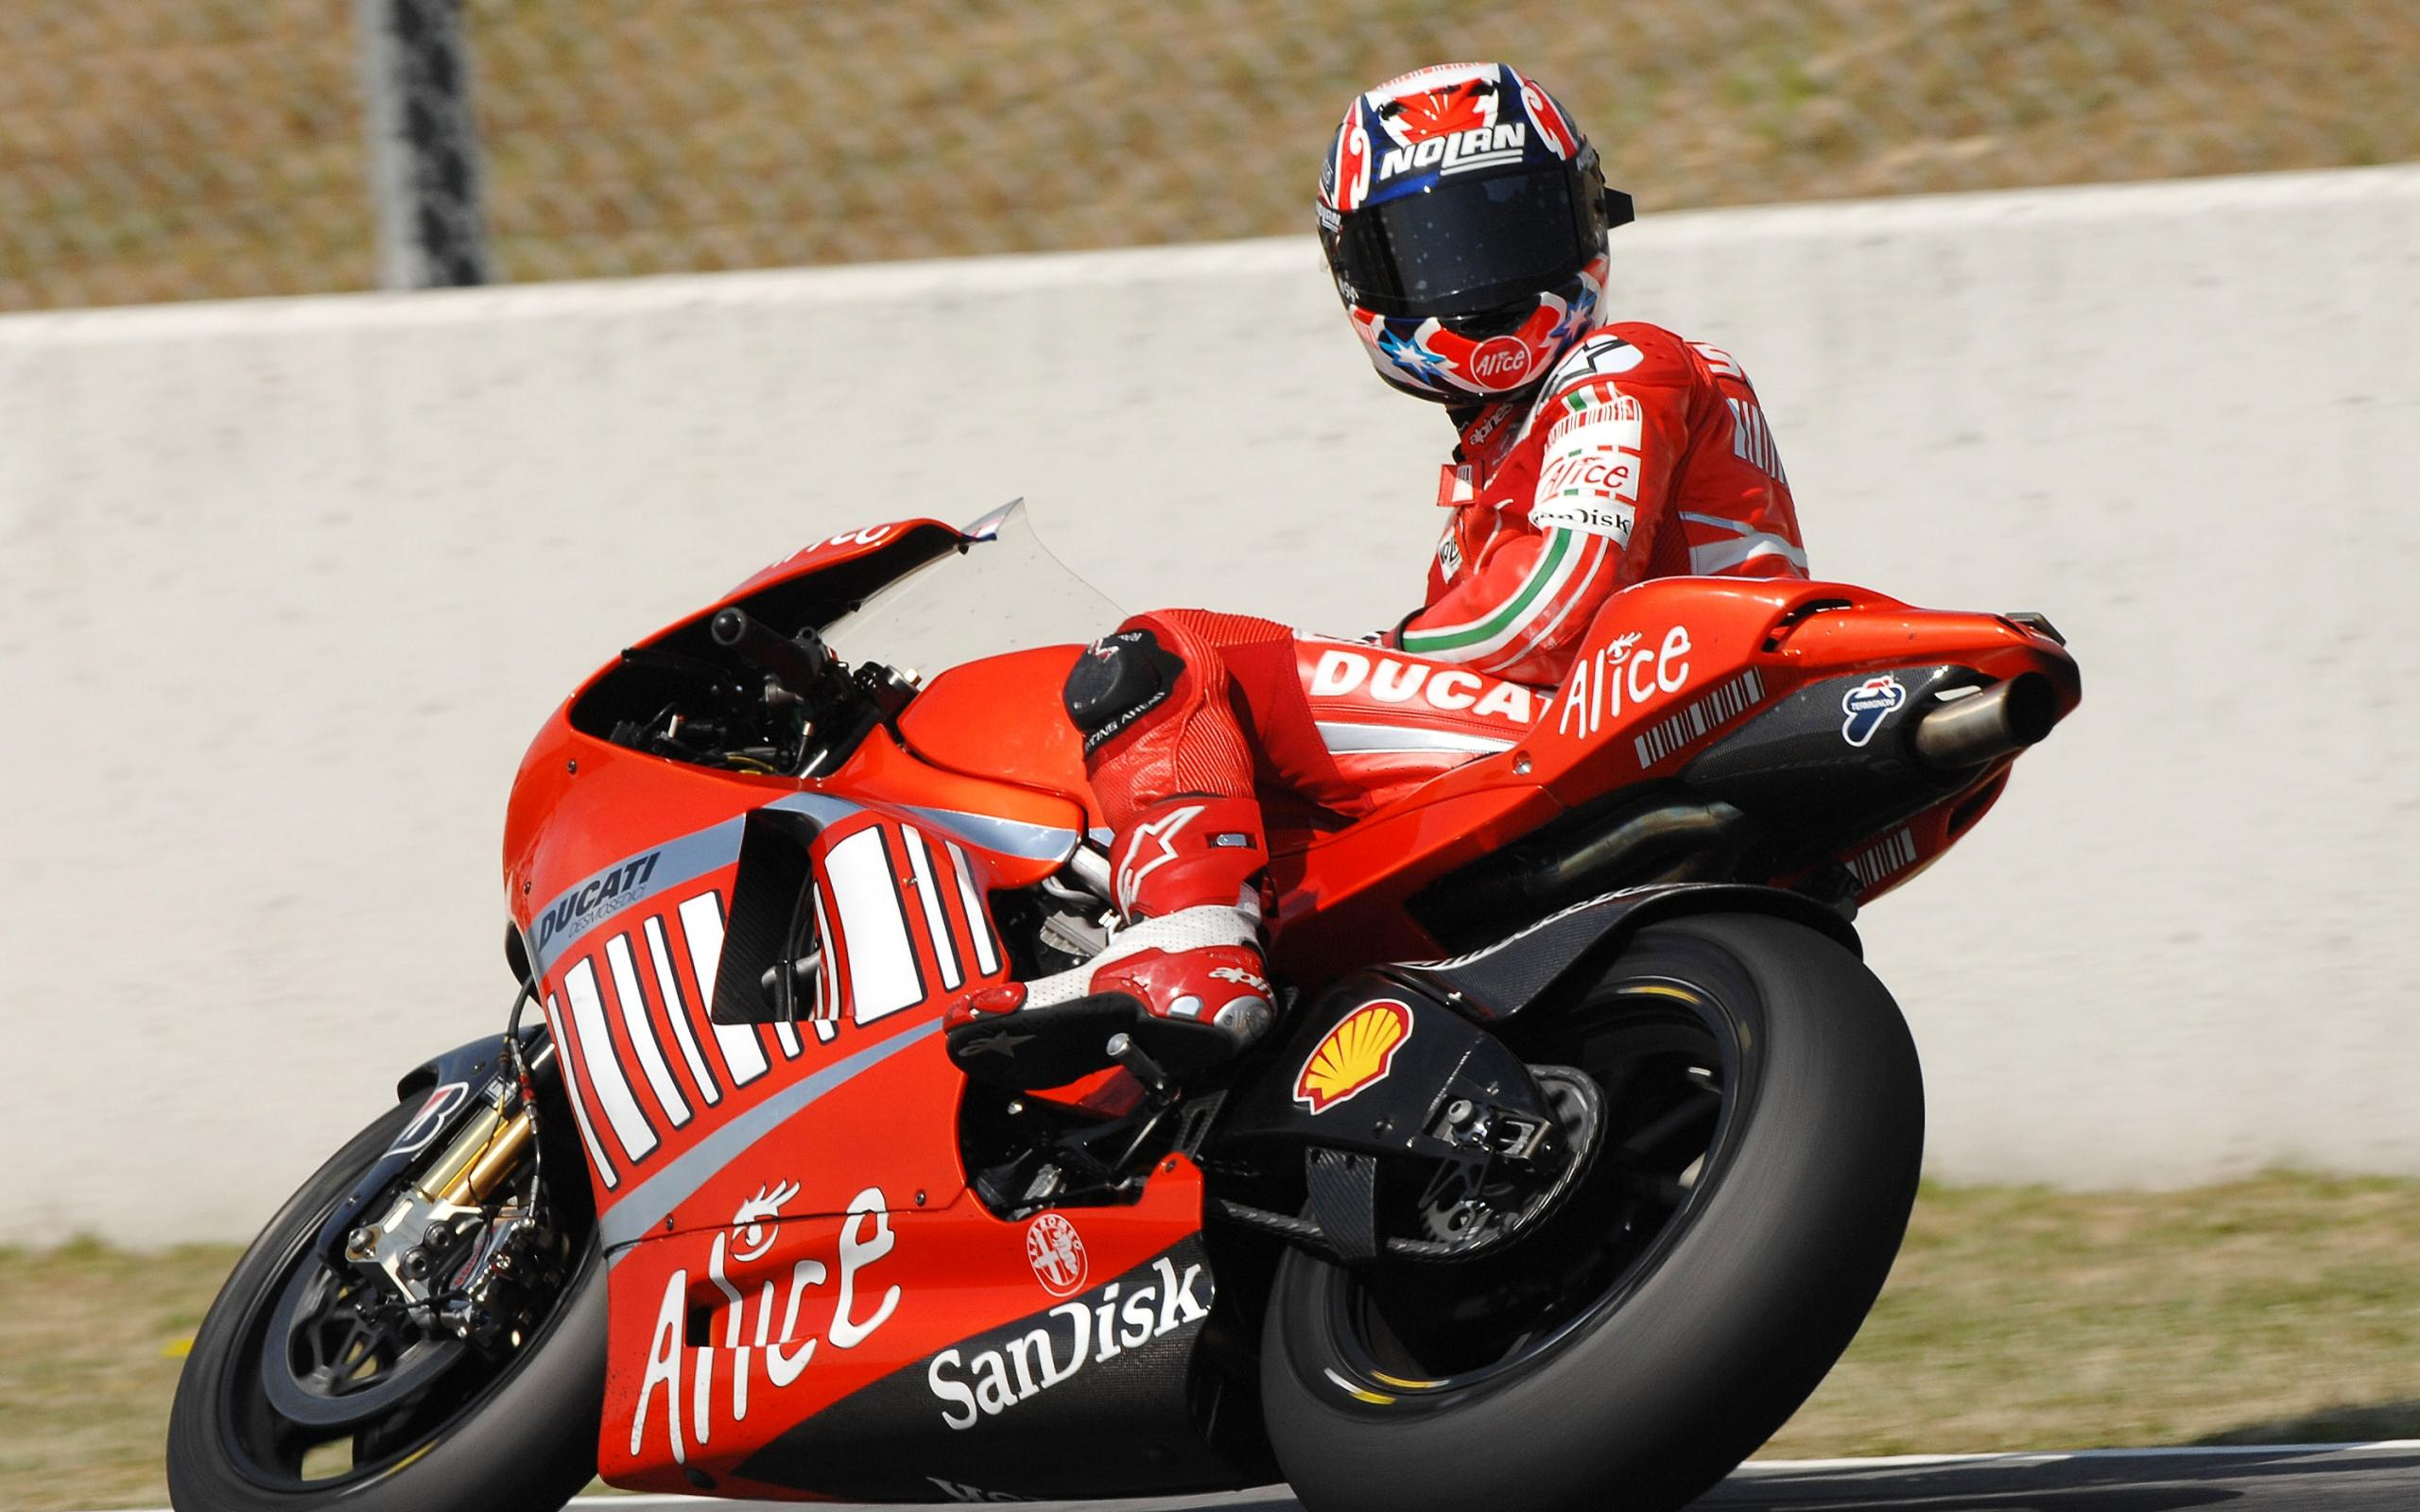 HD Ducati Vehicles Motorcycles Motorbikes Bikes Red Color